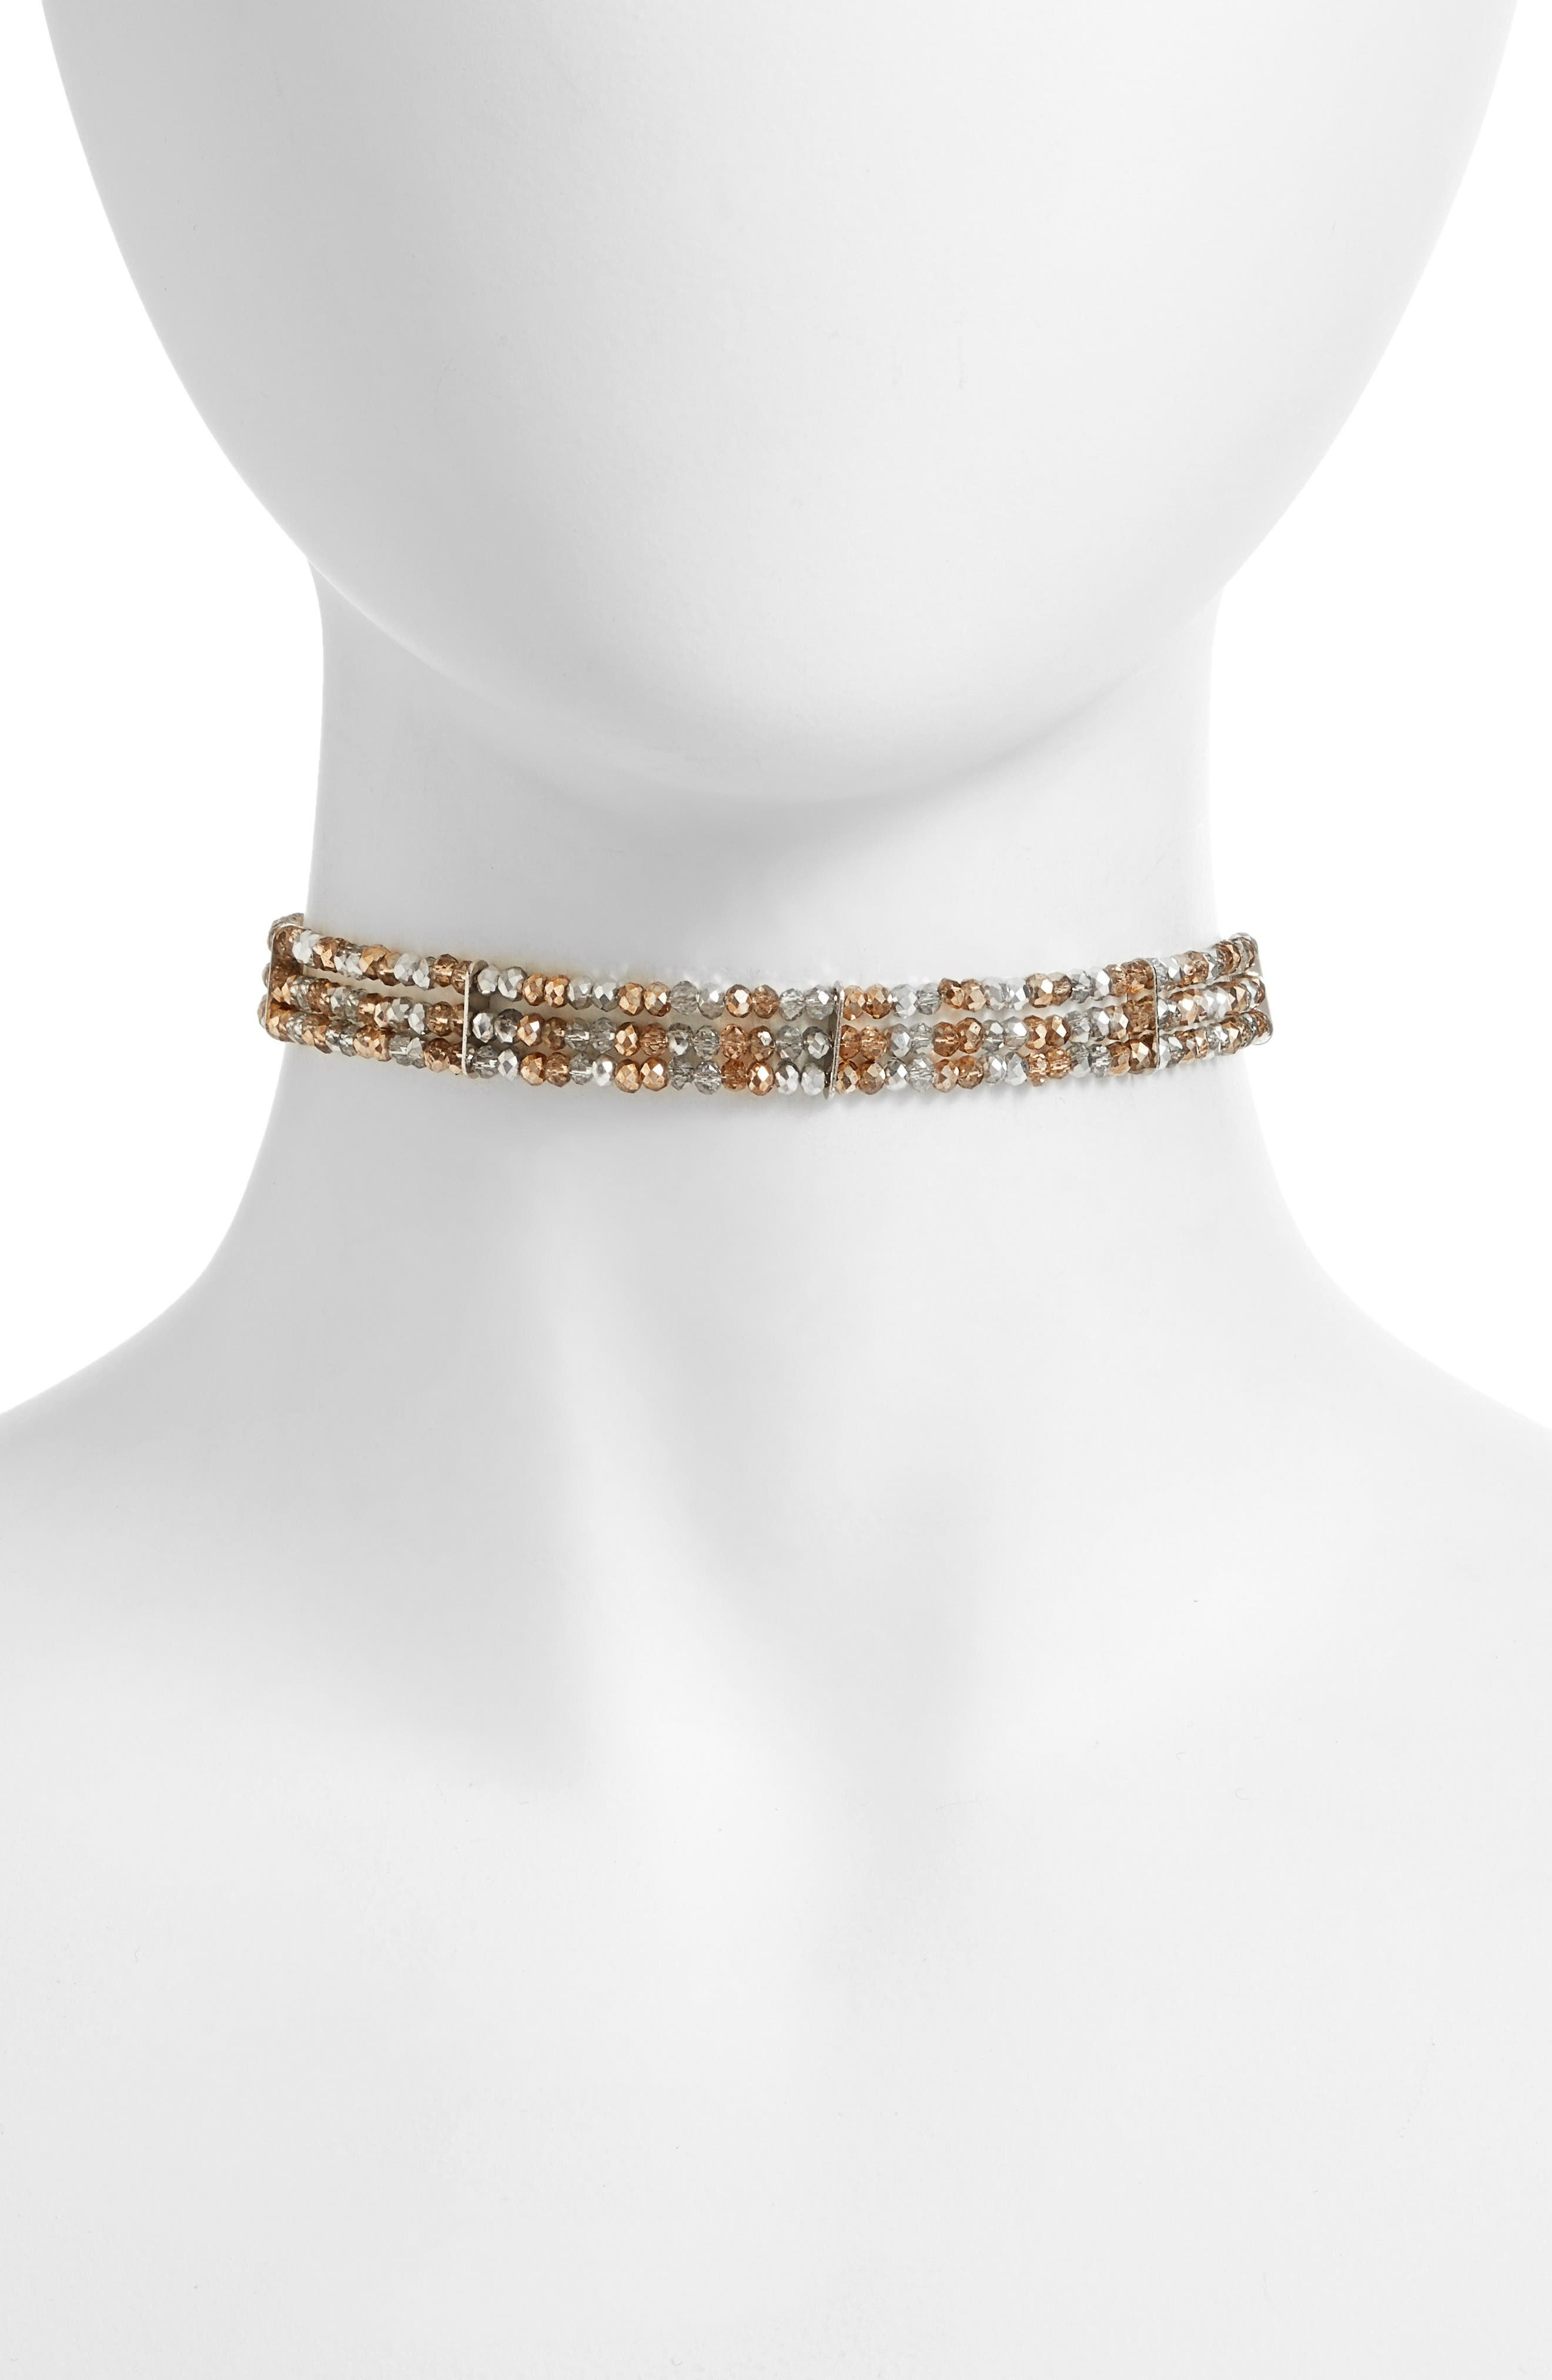 Beaded Multistrand Choker,                         Main,                         color, Radiance / Silver